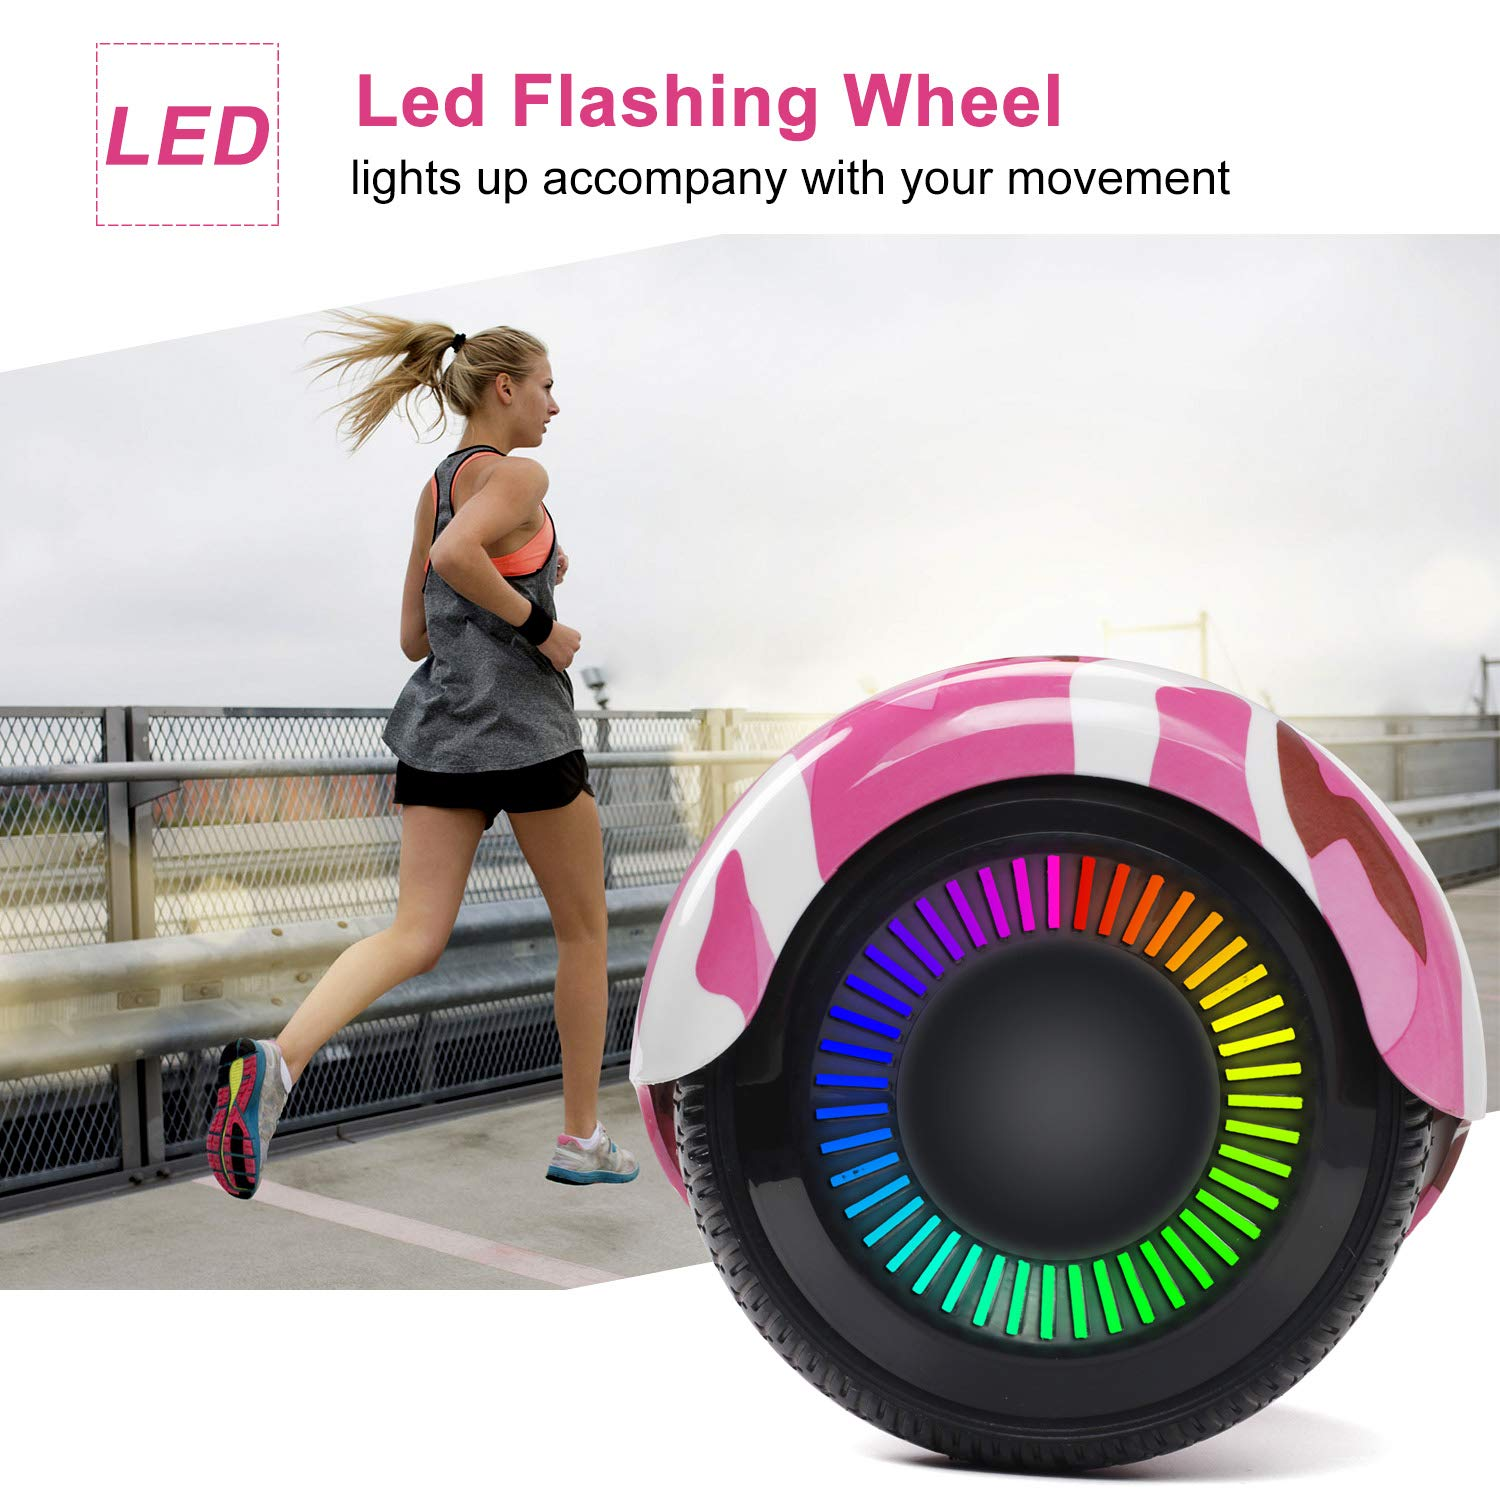 SISIGAD Hoverboard Self Balancing Scooter 6.5'' Two-Wheel Self Balancing Hoverboard with LED Lights Electric Scooter for Adult Kids Gift UL 2272 Certified Fun Edition - Pink Camou by SISIGAD (Image #4)